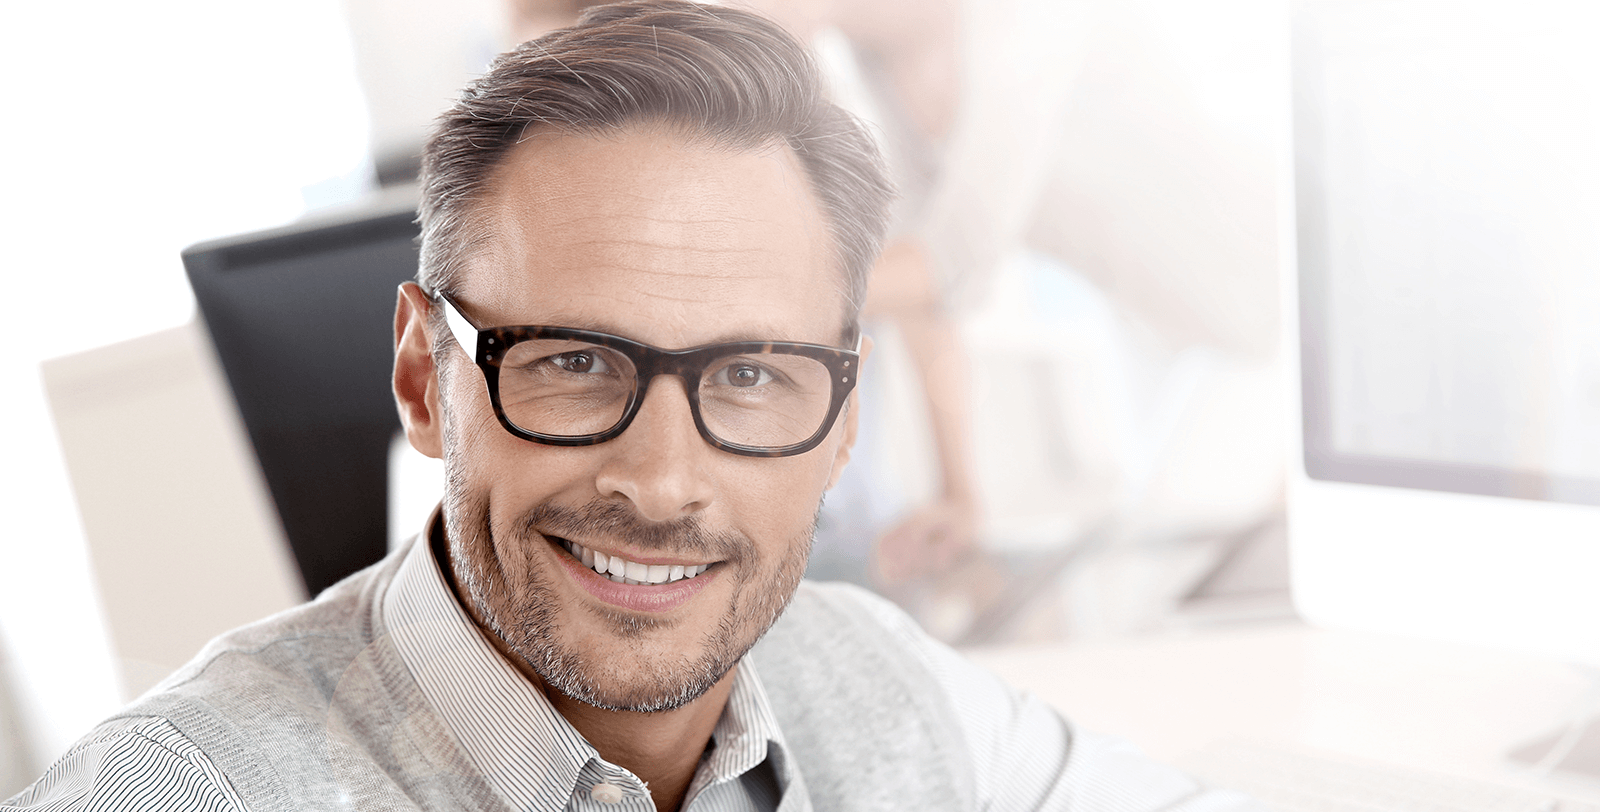 Natural Health Better To Wear Eye Glasses Or Not